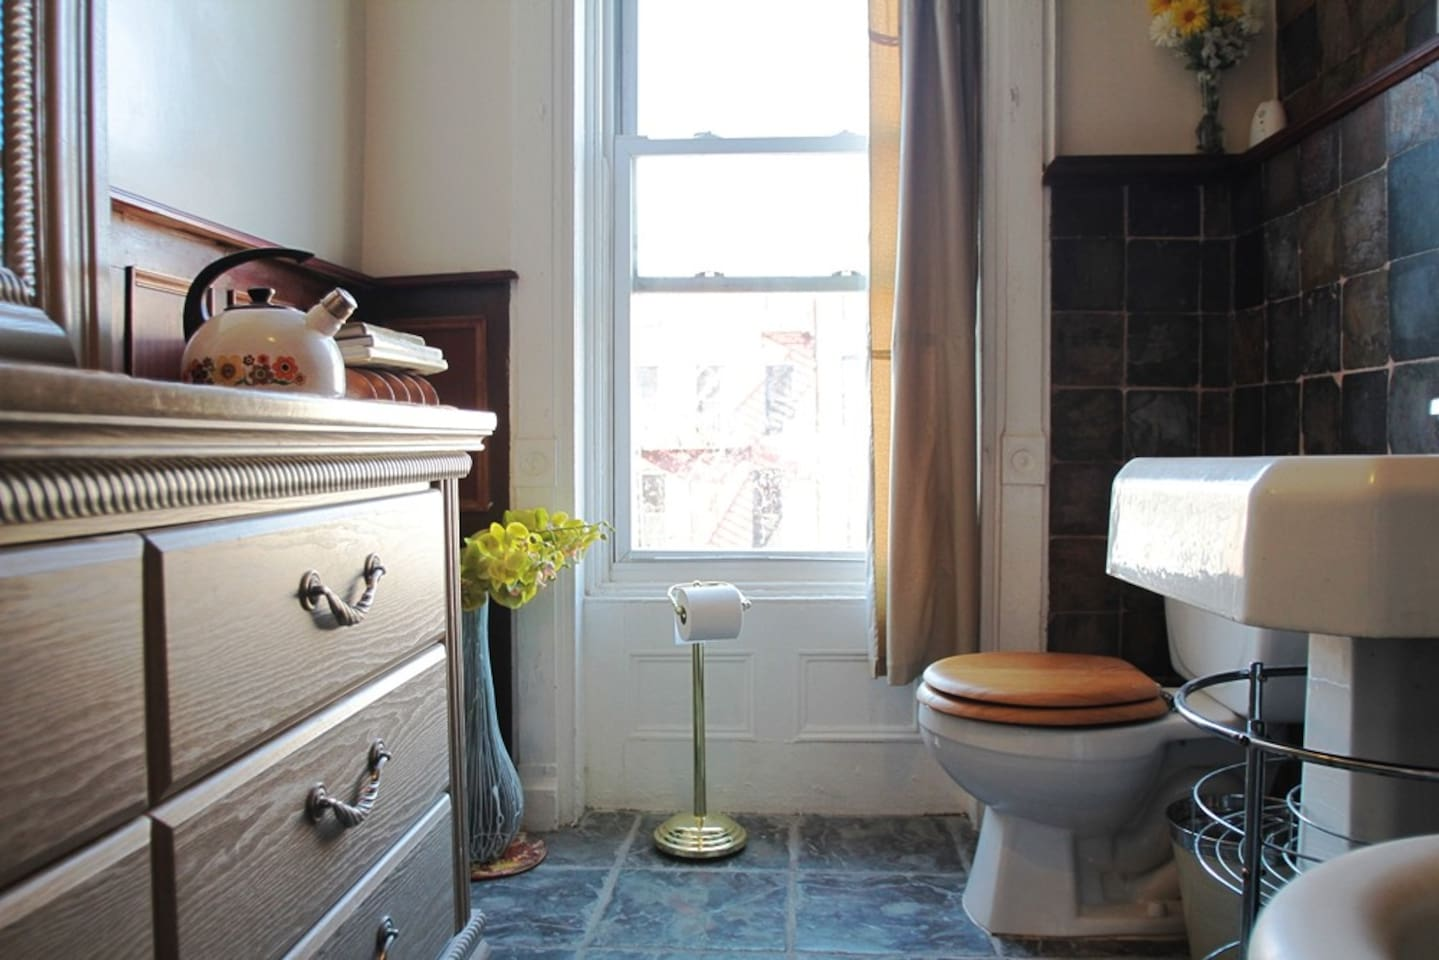 The private bathroom has an entrance next to the front door of the apartment and overlooks the backyard at the north end of Suite Madison.